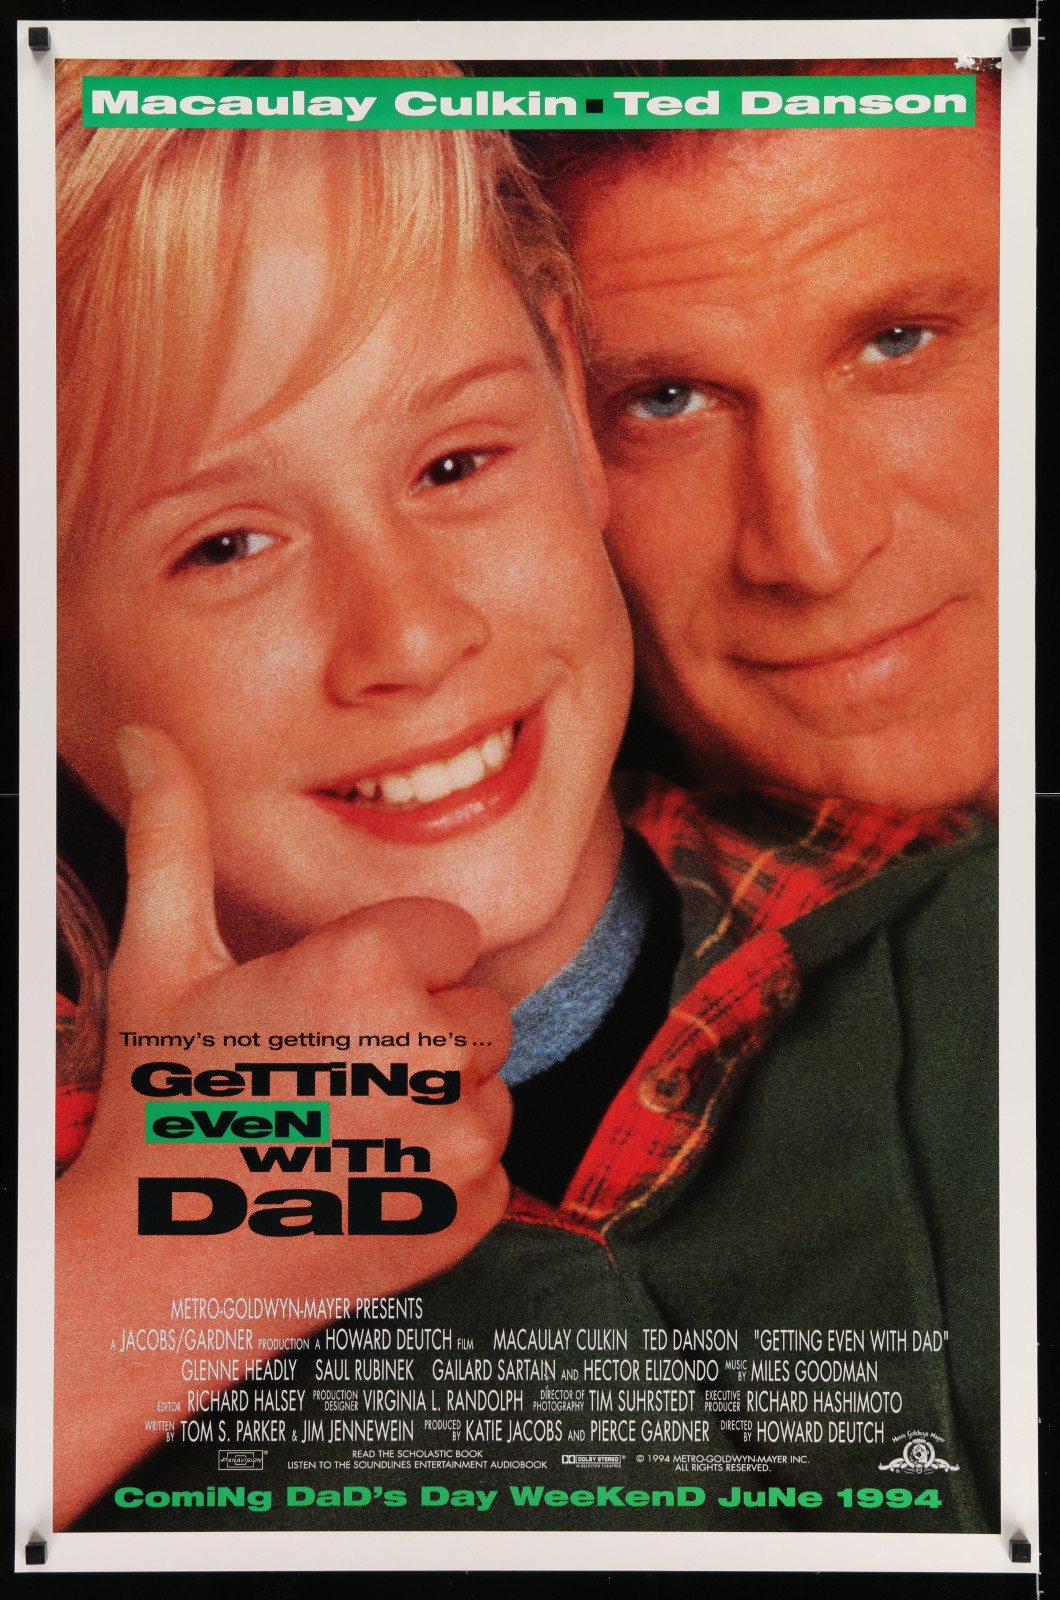 Getting Even With Dad 2A422 A Part Of A Lot 19 Unfolded Mostly Double-Sided 27X41 One-Sheets '90S-00S Great Movie Images!